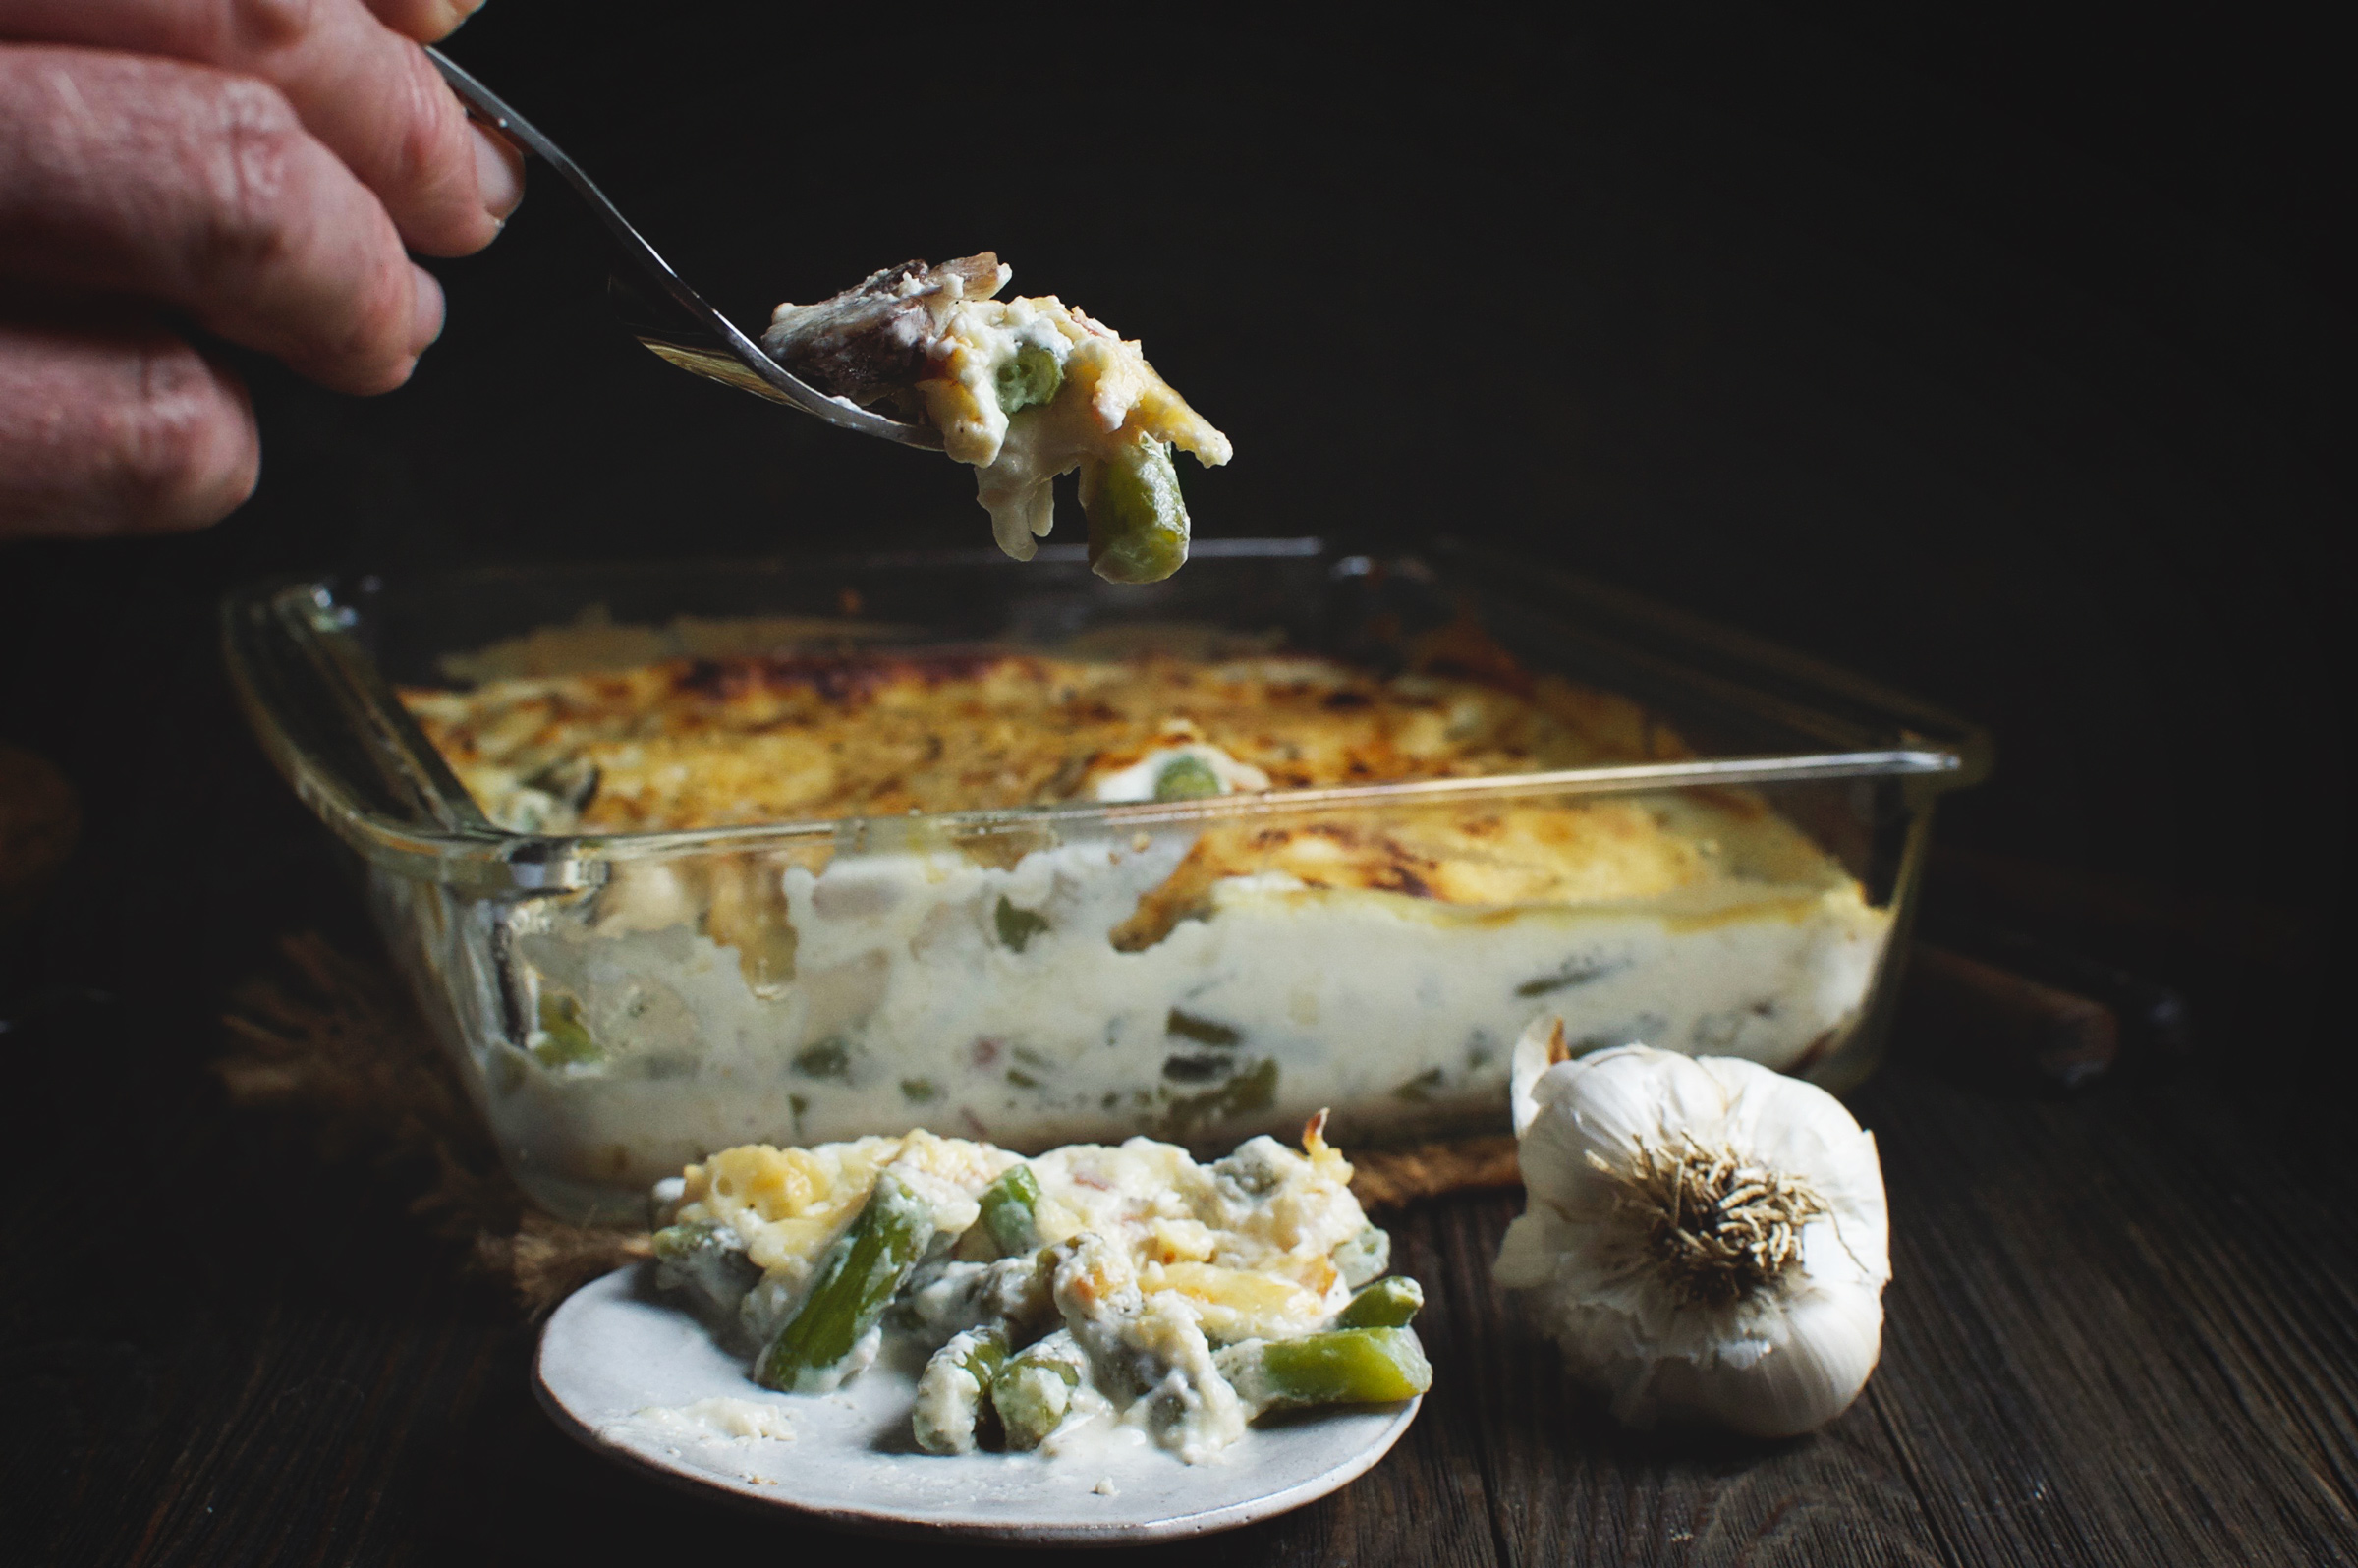 Low-Carb Green Bean and Mushroom Casserole being spooned out of the baking dish.